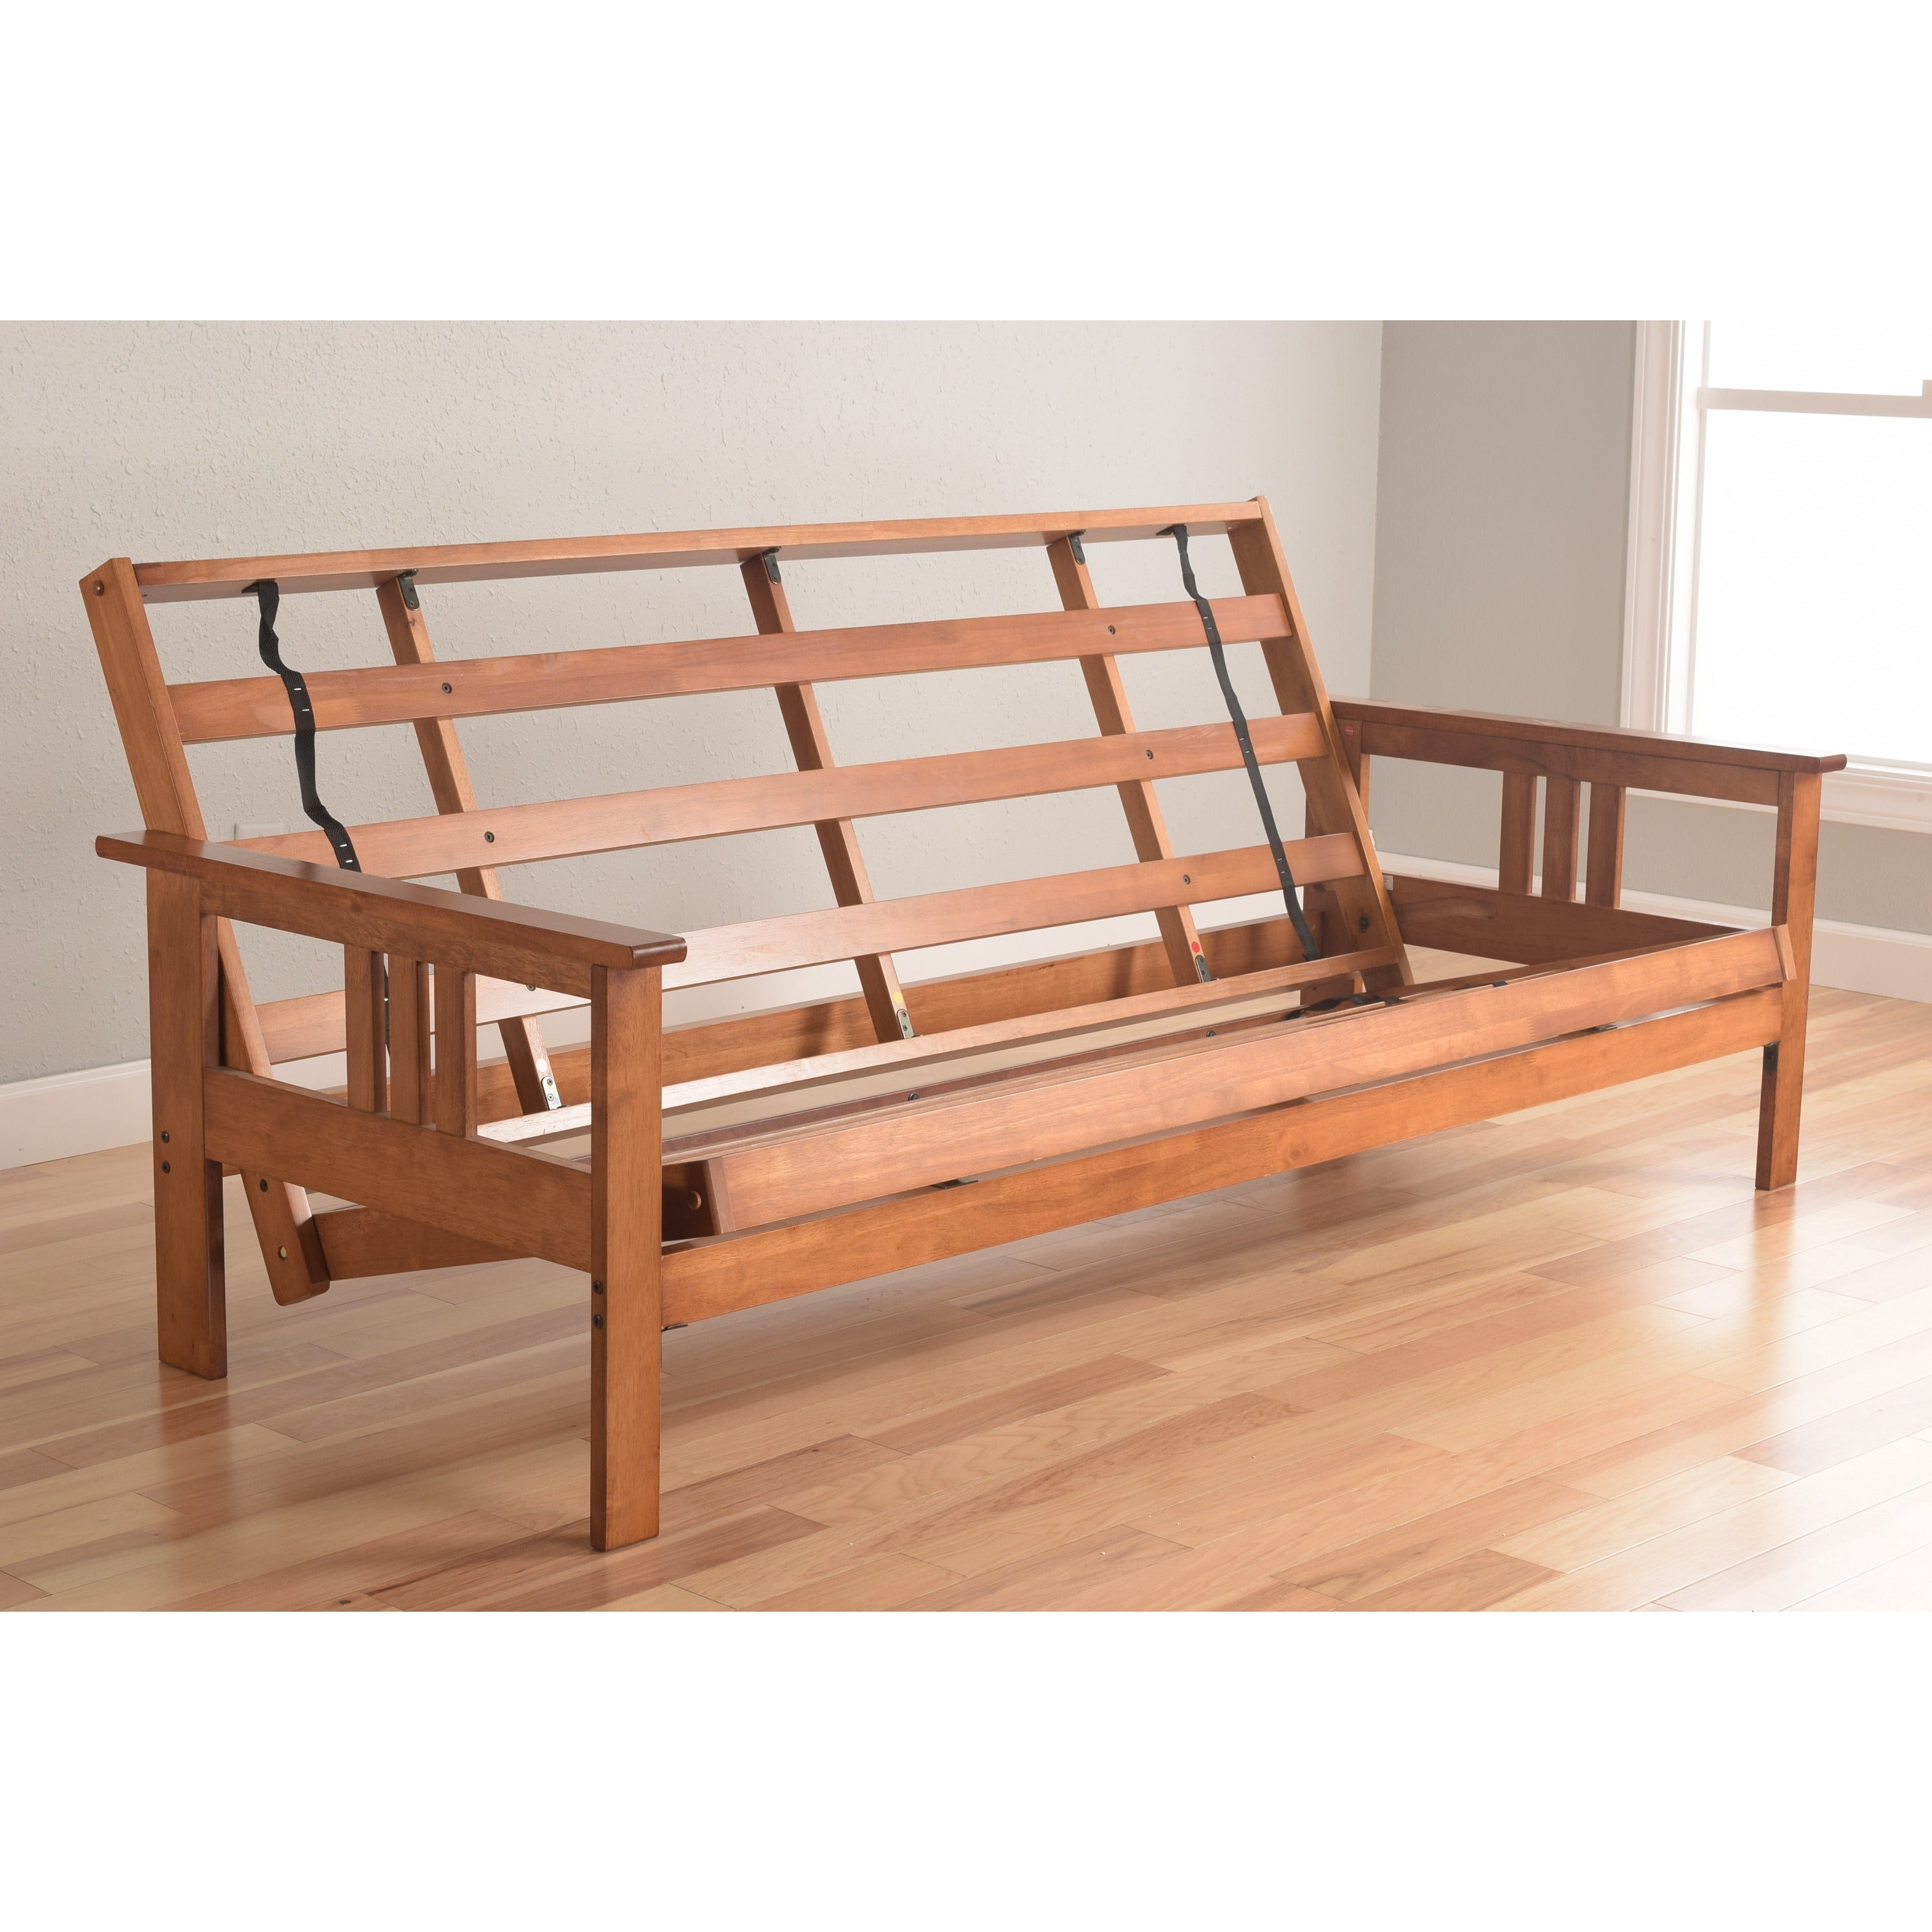 somette phonics shipping wooden today white garden free overstock antique multi innerspring and drawers home ali frame flex mattress with futons wood futon product in